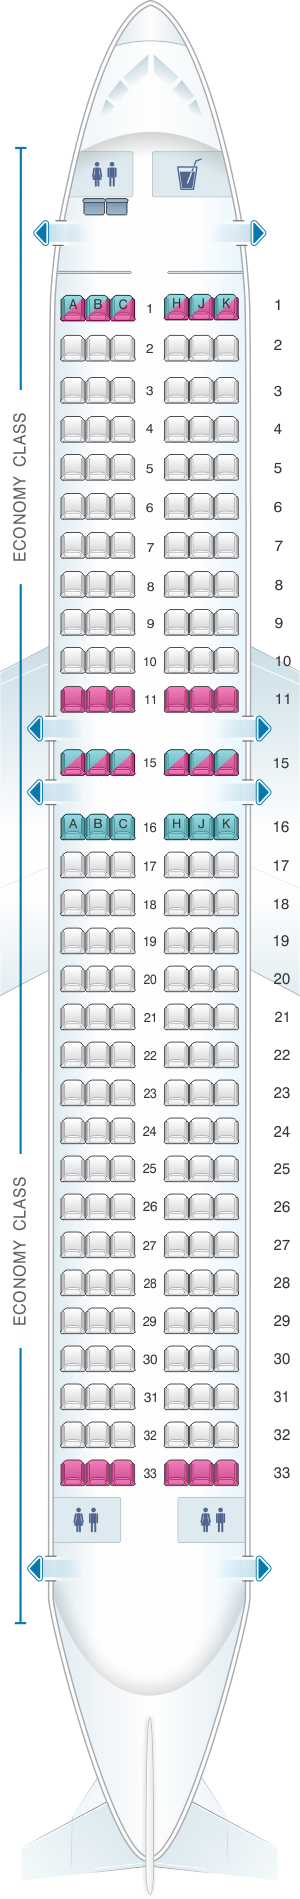 Seat map for Air Transat Airbus A320 200 US and South